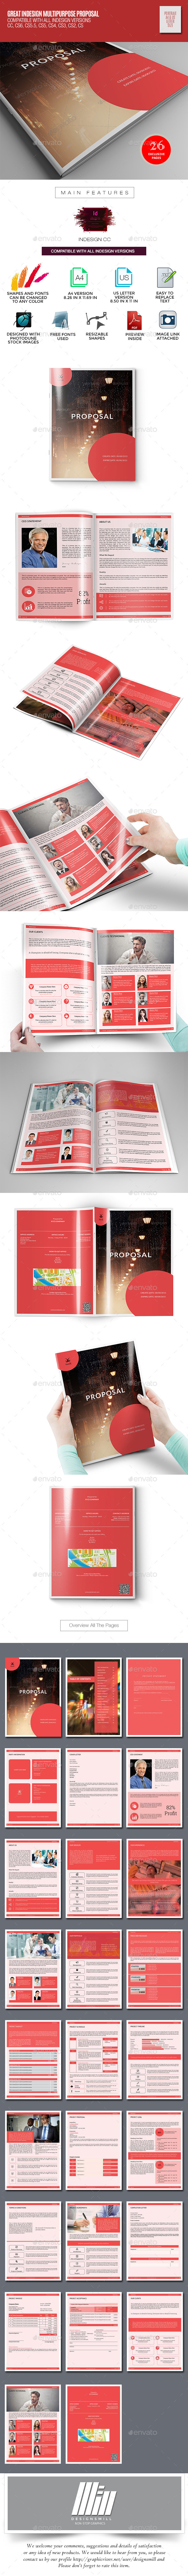 Easy Business Proposal - Proposals & Invoices Stationery